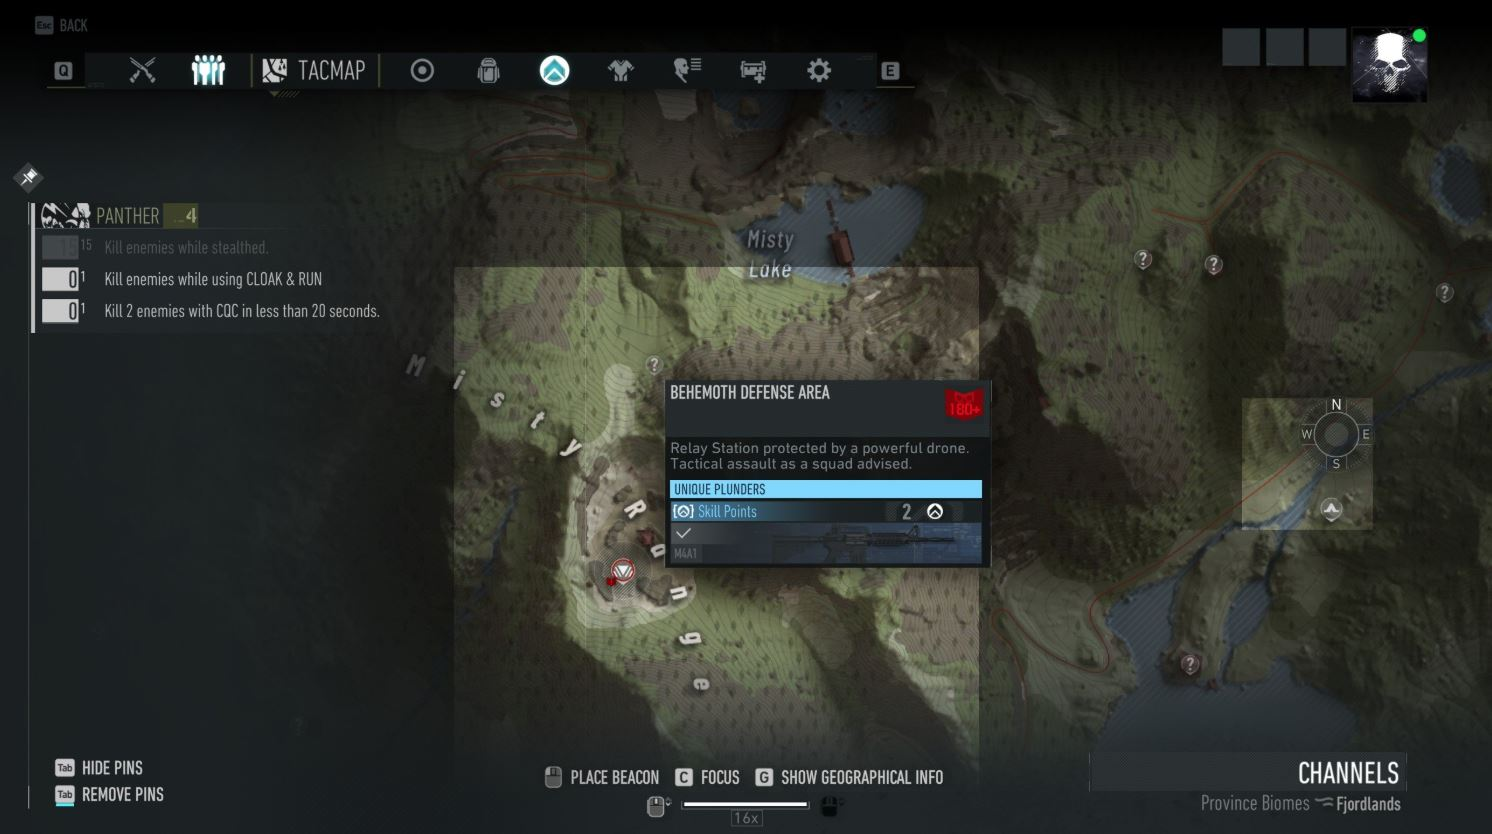 Where to find the M4A1 blueprint in Ghost Recon Breakpoint